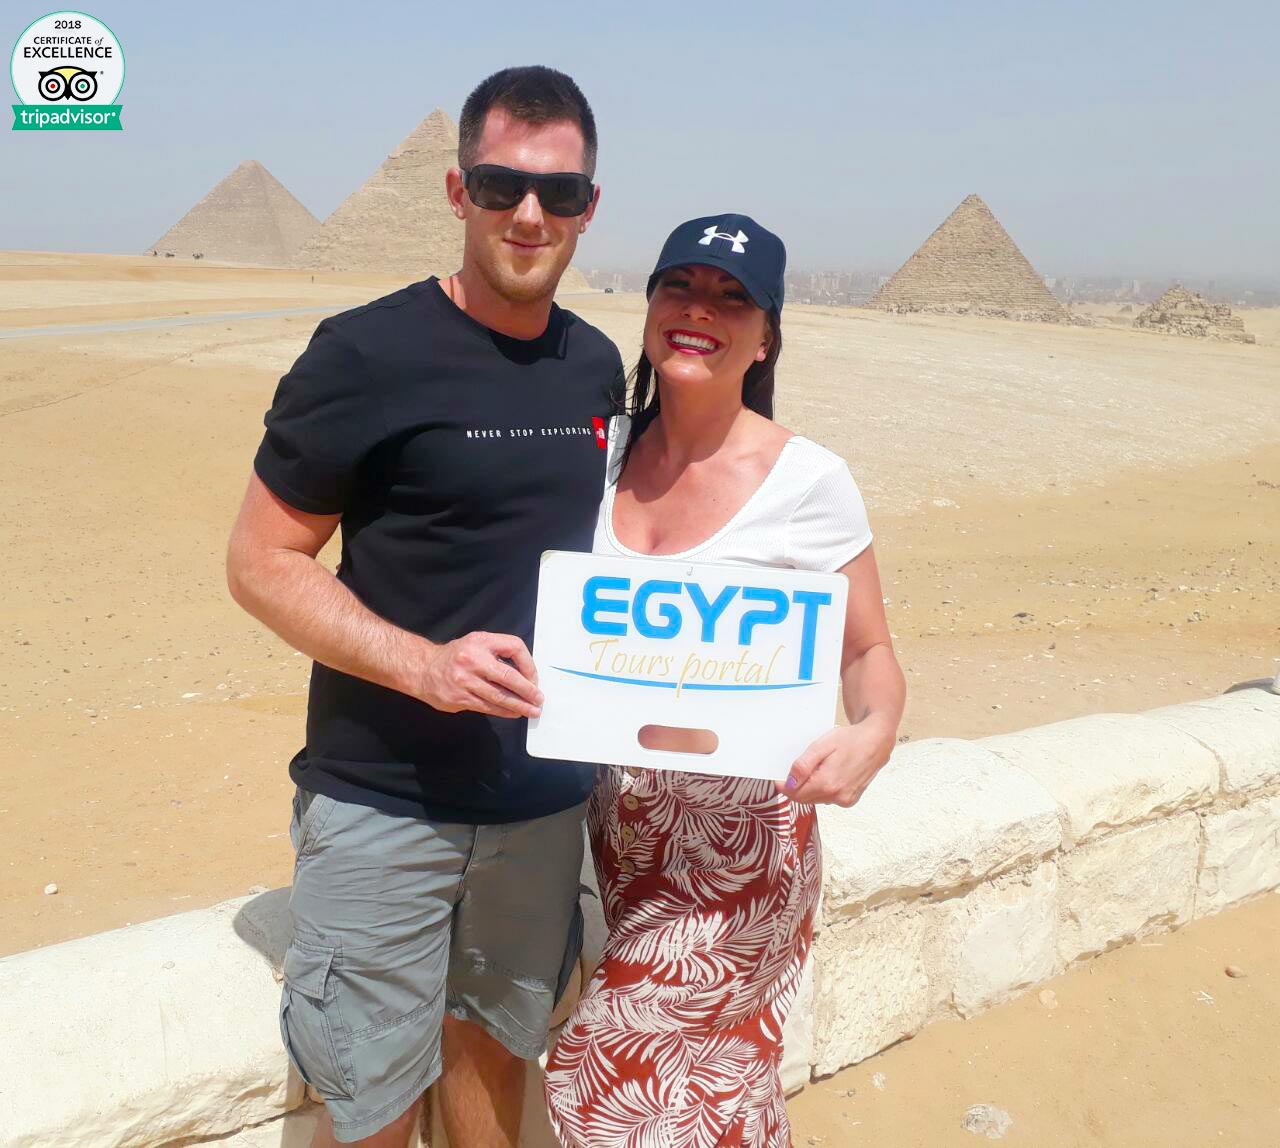 Cairo tours - How to Spend a Night in Cairo - Egypt Tours Portal